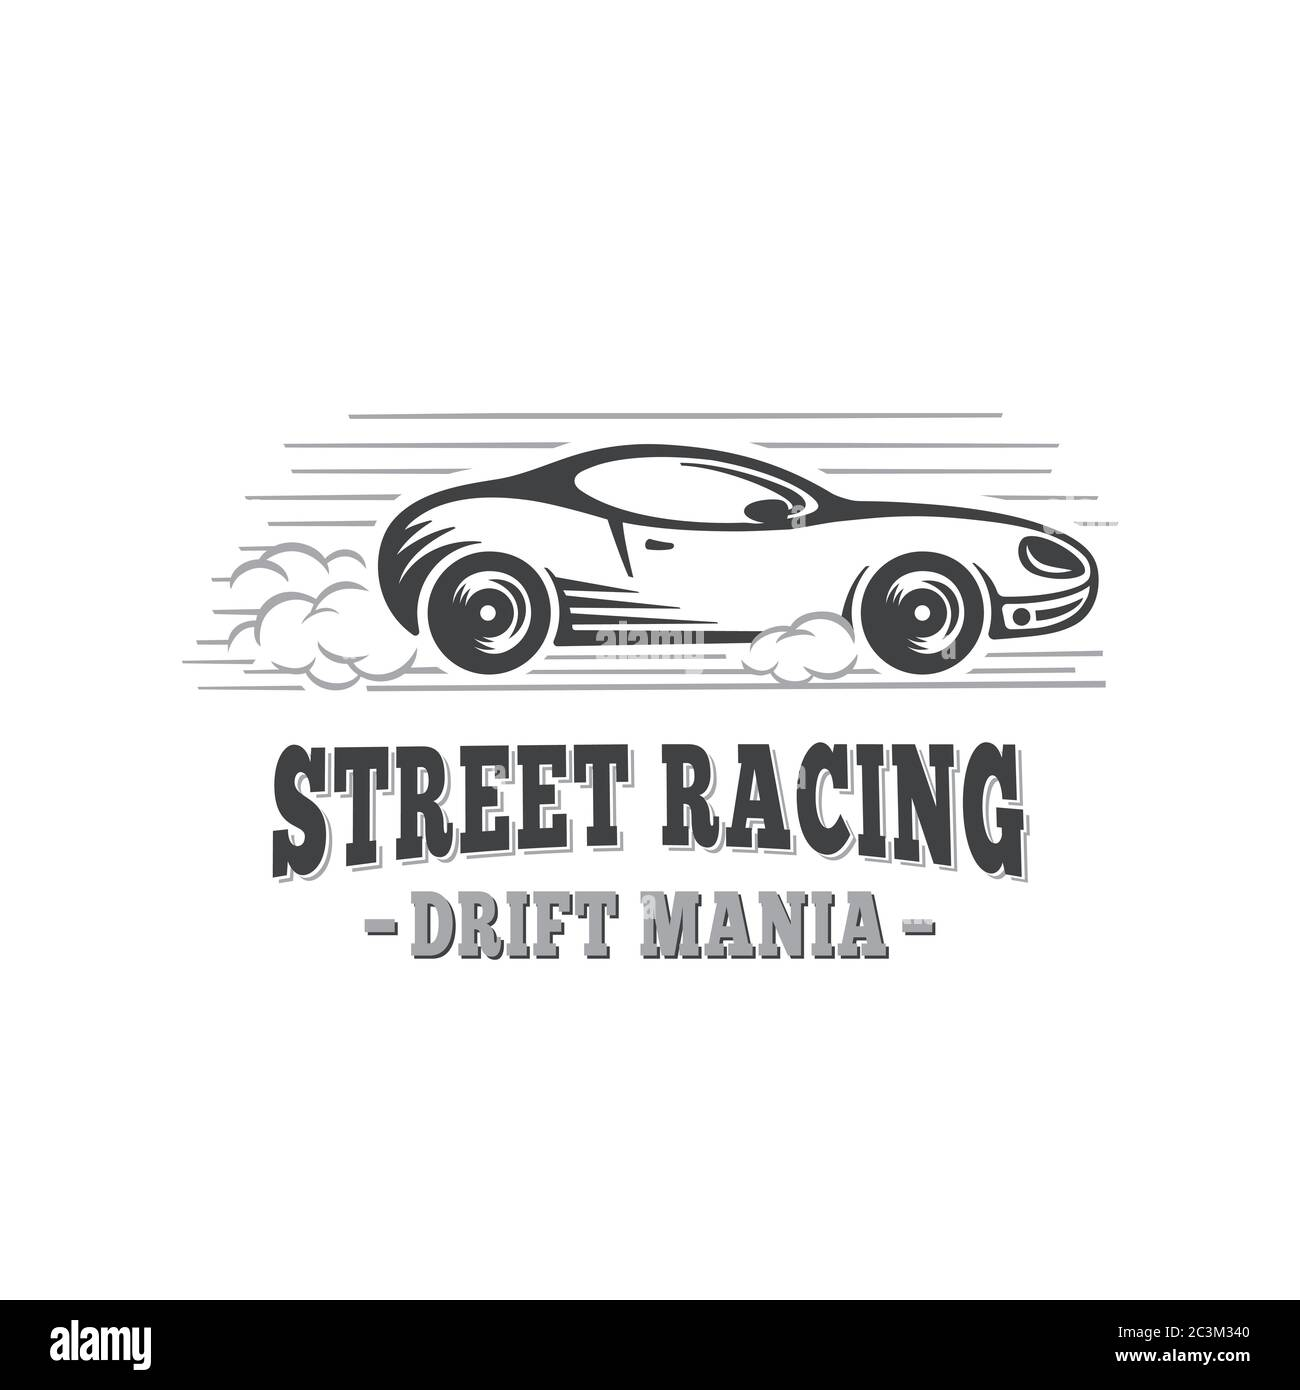 Sport Car Street Racing Design Template Drift Mania Vector And Illustrations Stock Vector Image Art Alamy